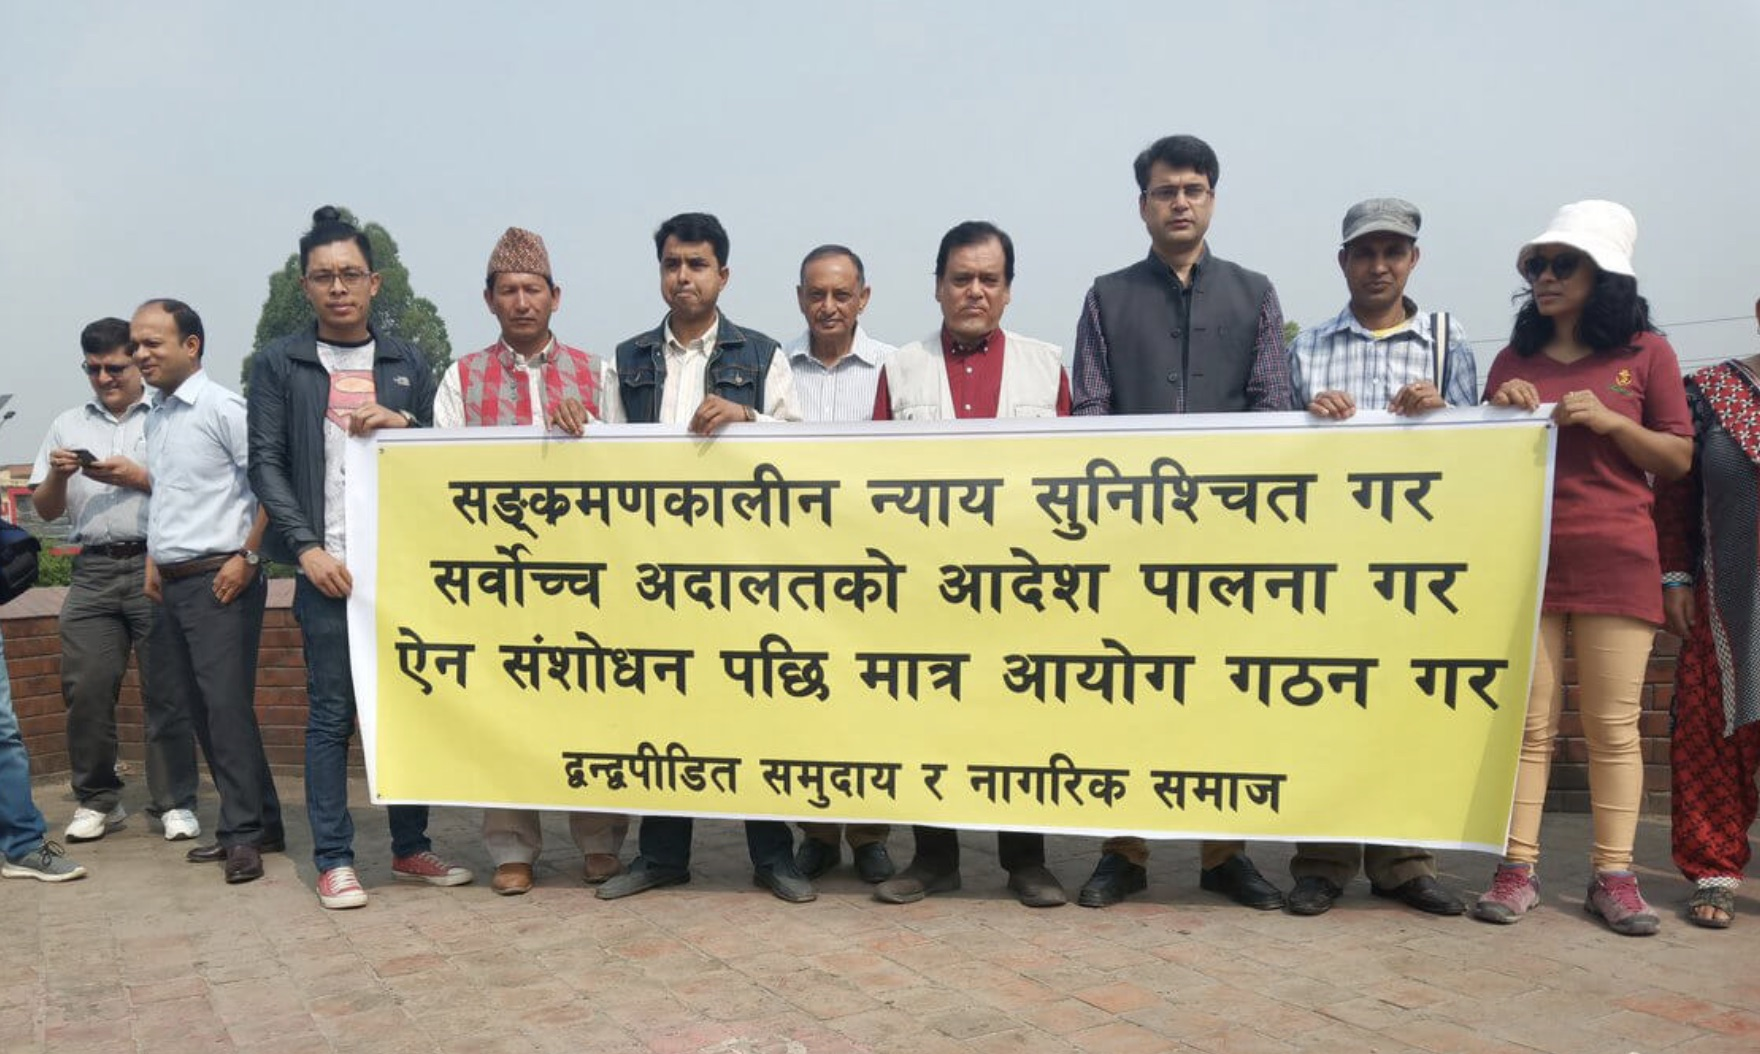 Nepal's rights groups must step up